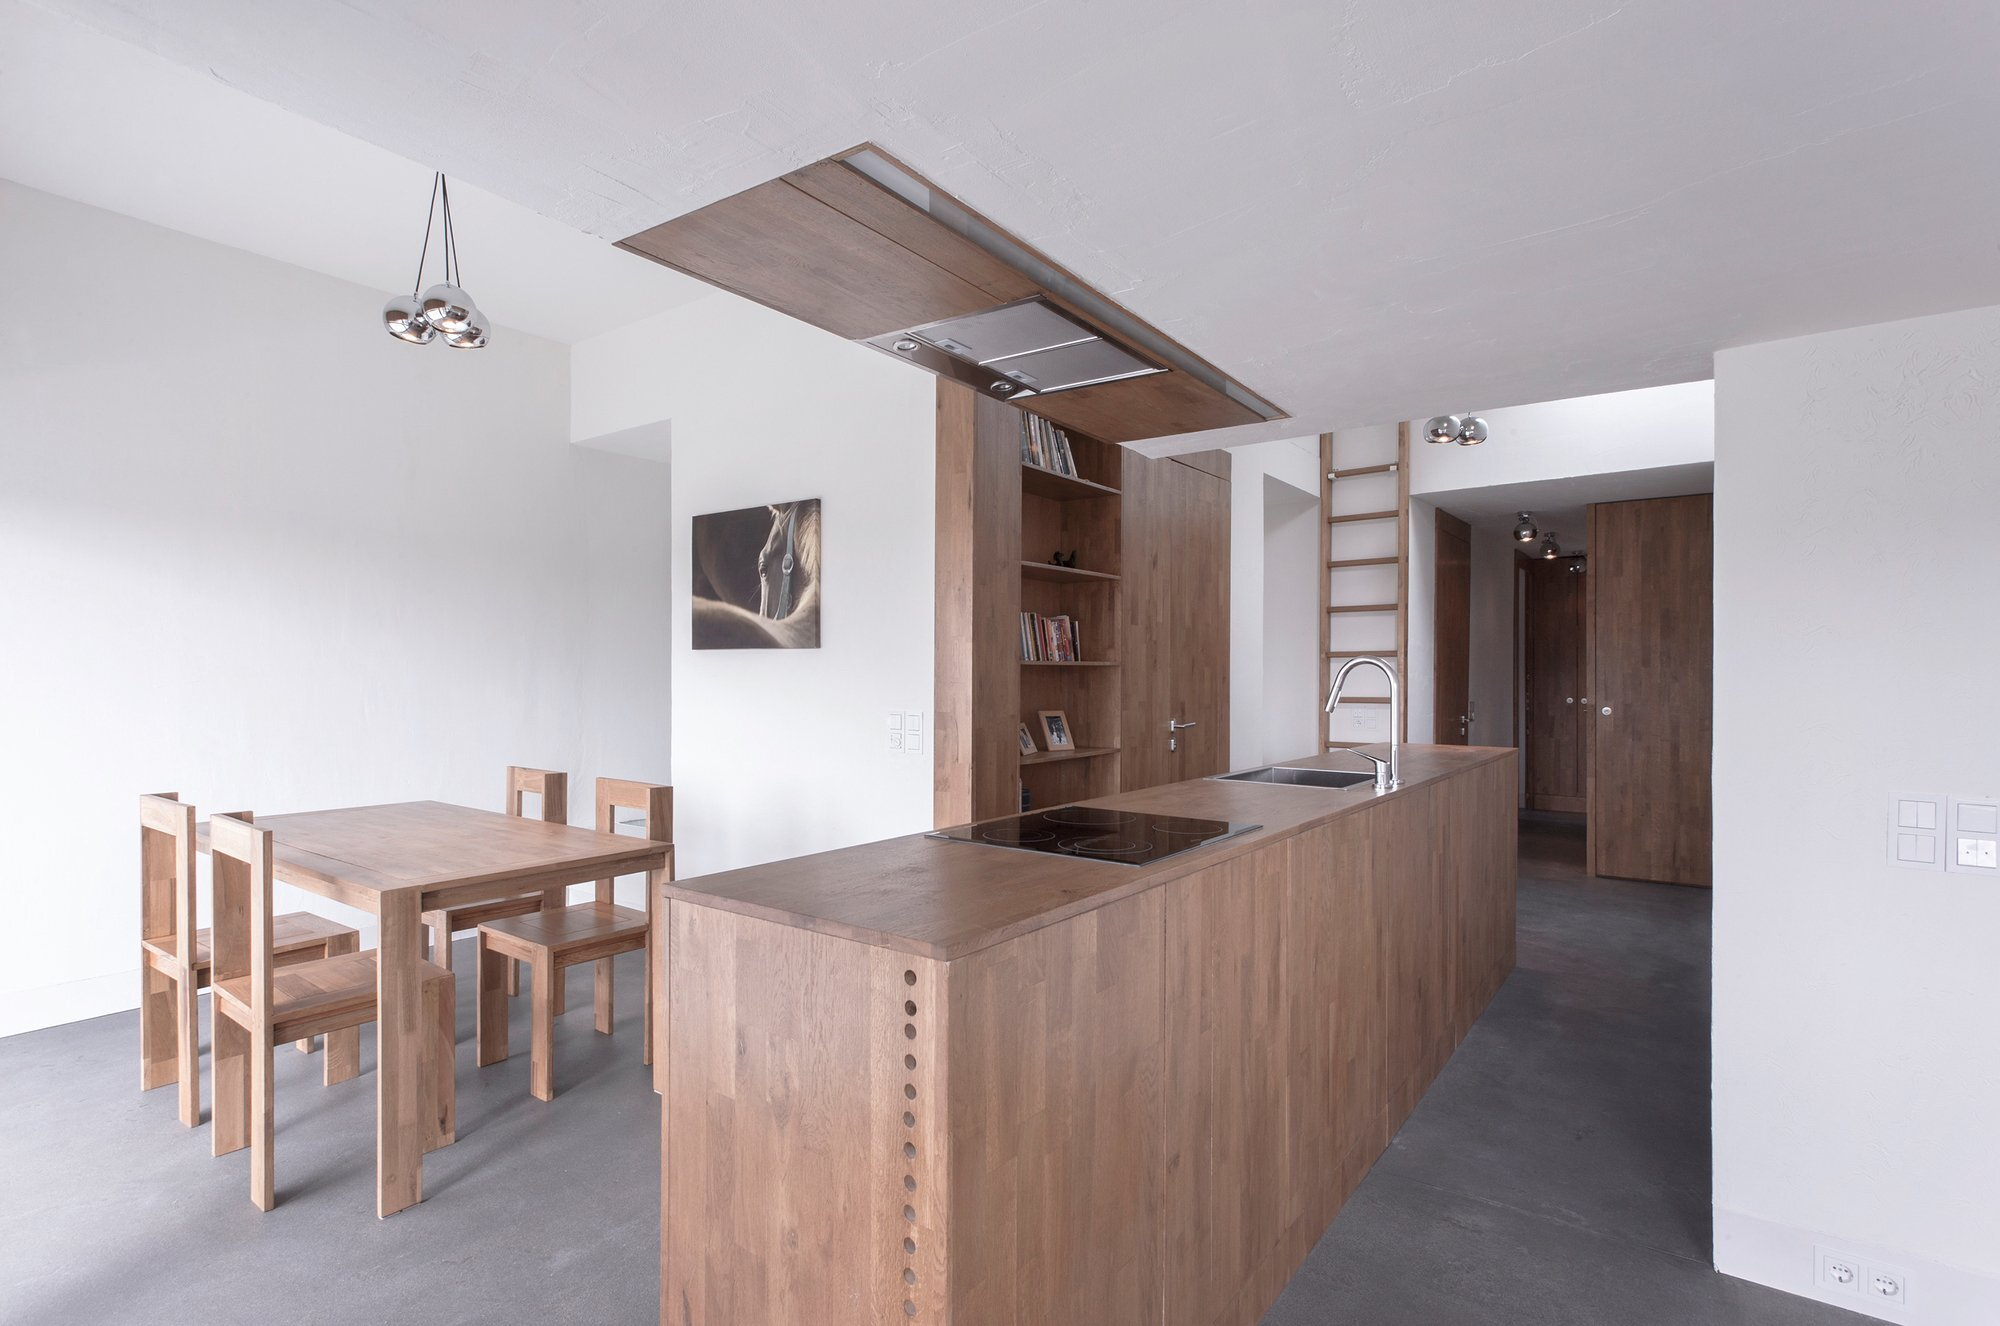 Under the Attic - ahaa - Romania - Kitchen and Dining - Humble Homes